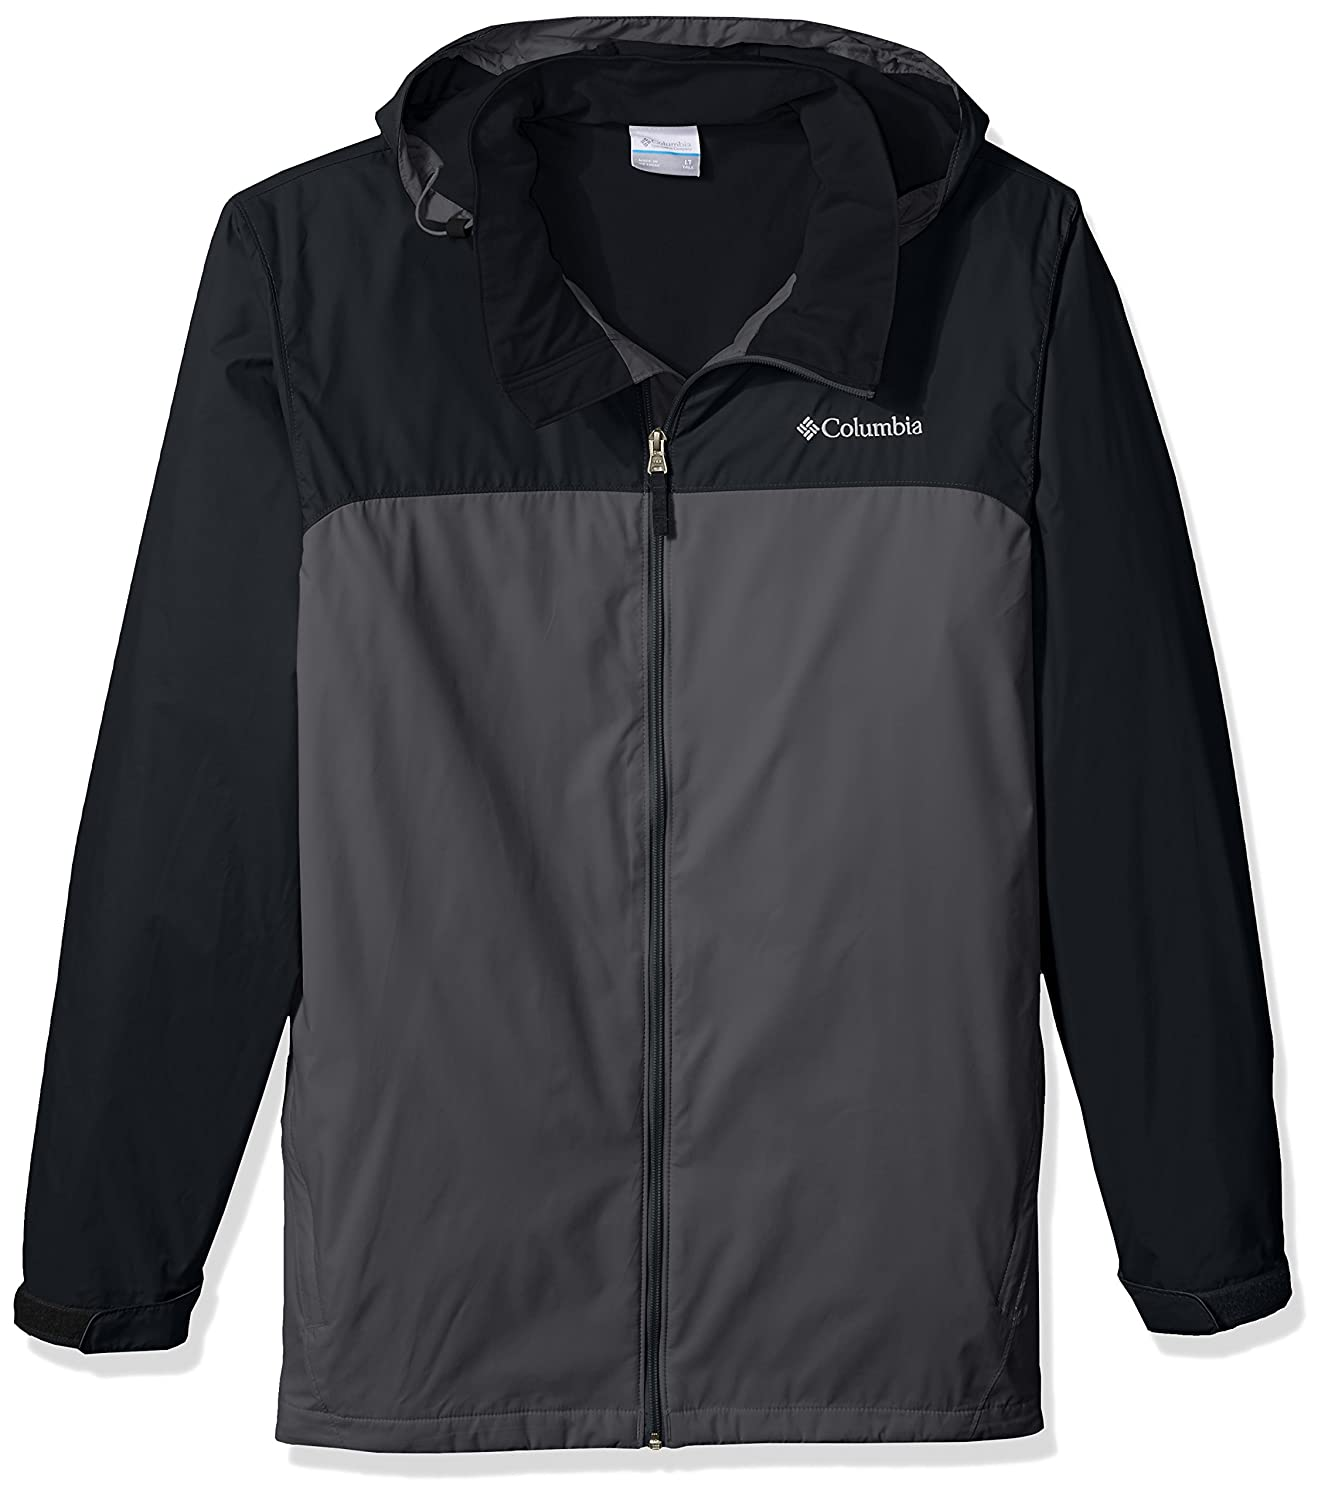 Columbia Hombres Glennaker Lake Big & Tall Lined Rain Jacket Chamarra de Lluvia: Amazon.es: Ropa y accesorios